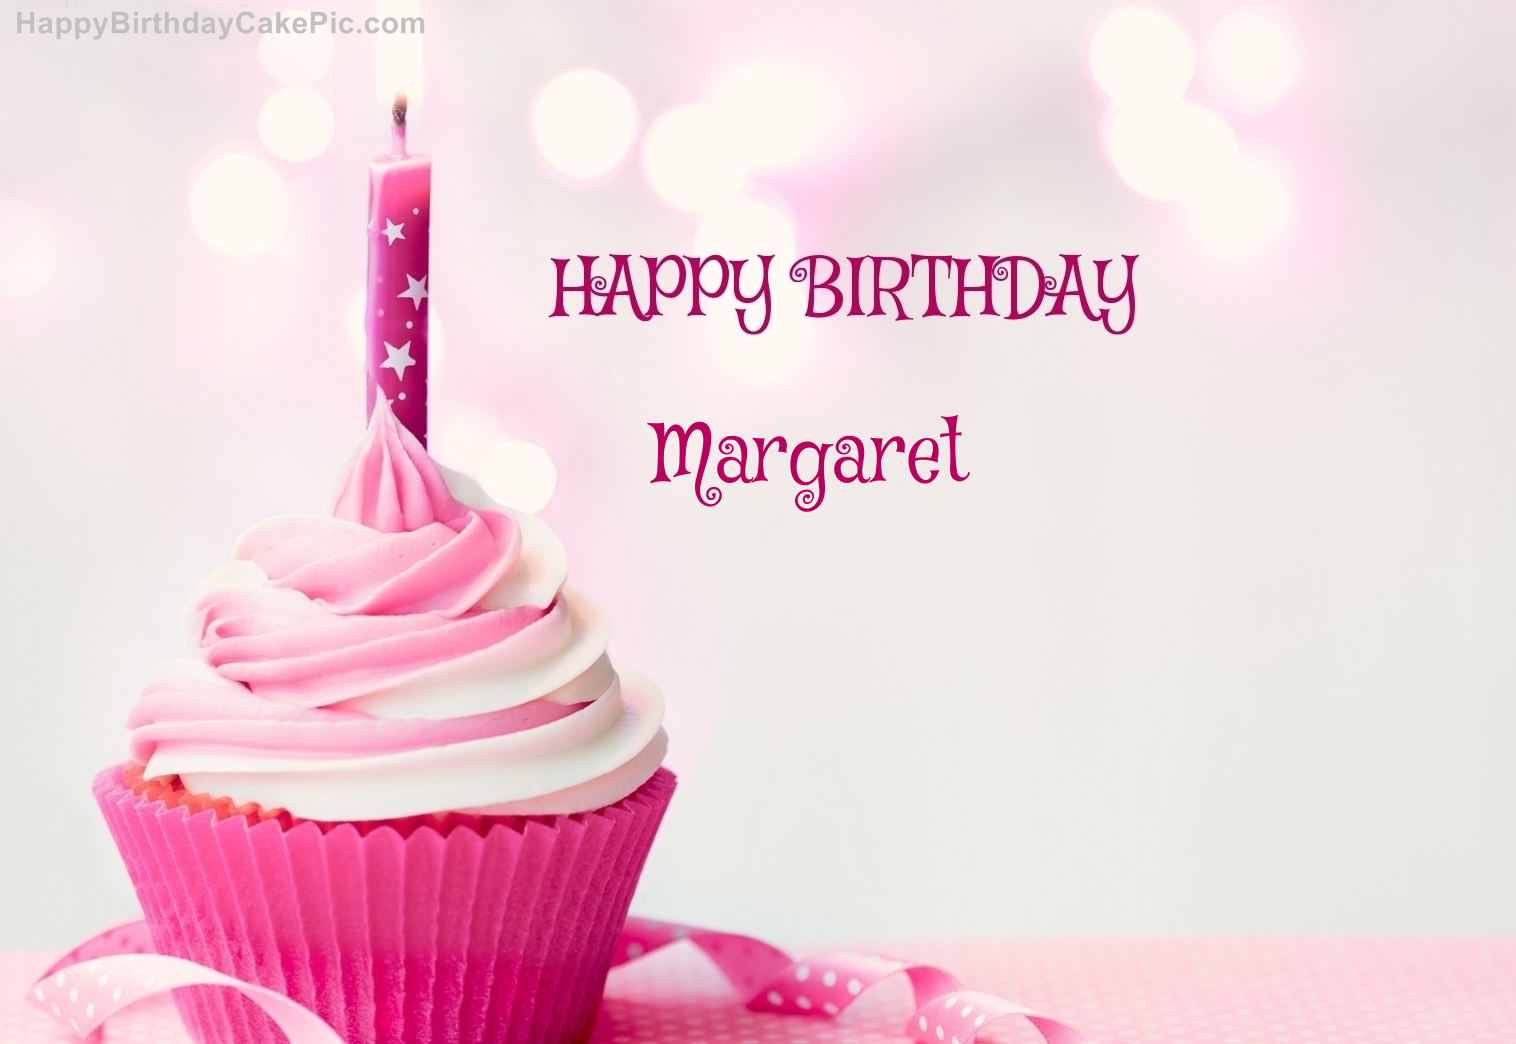 ️ Happy Birthday Cupcake Candle Pink Cake For Margaret